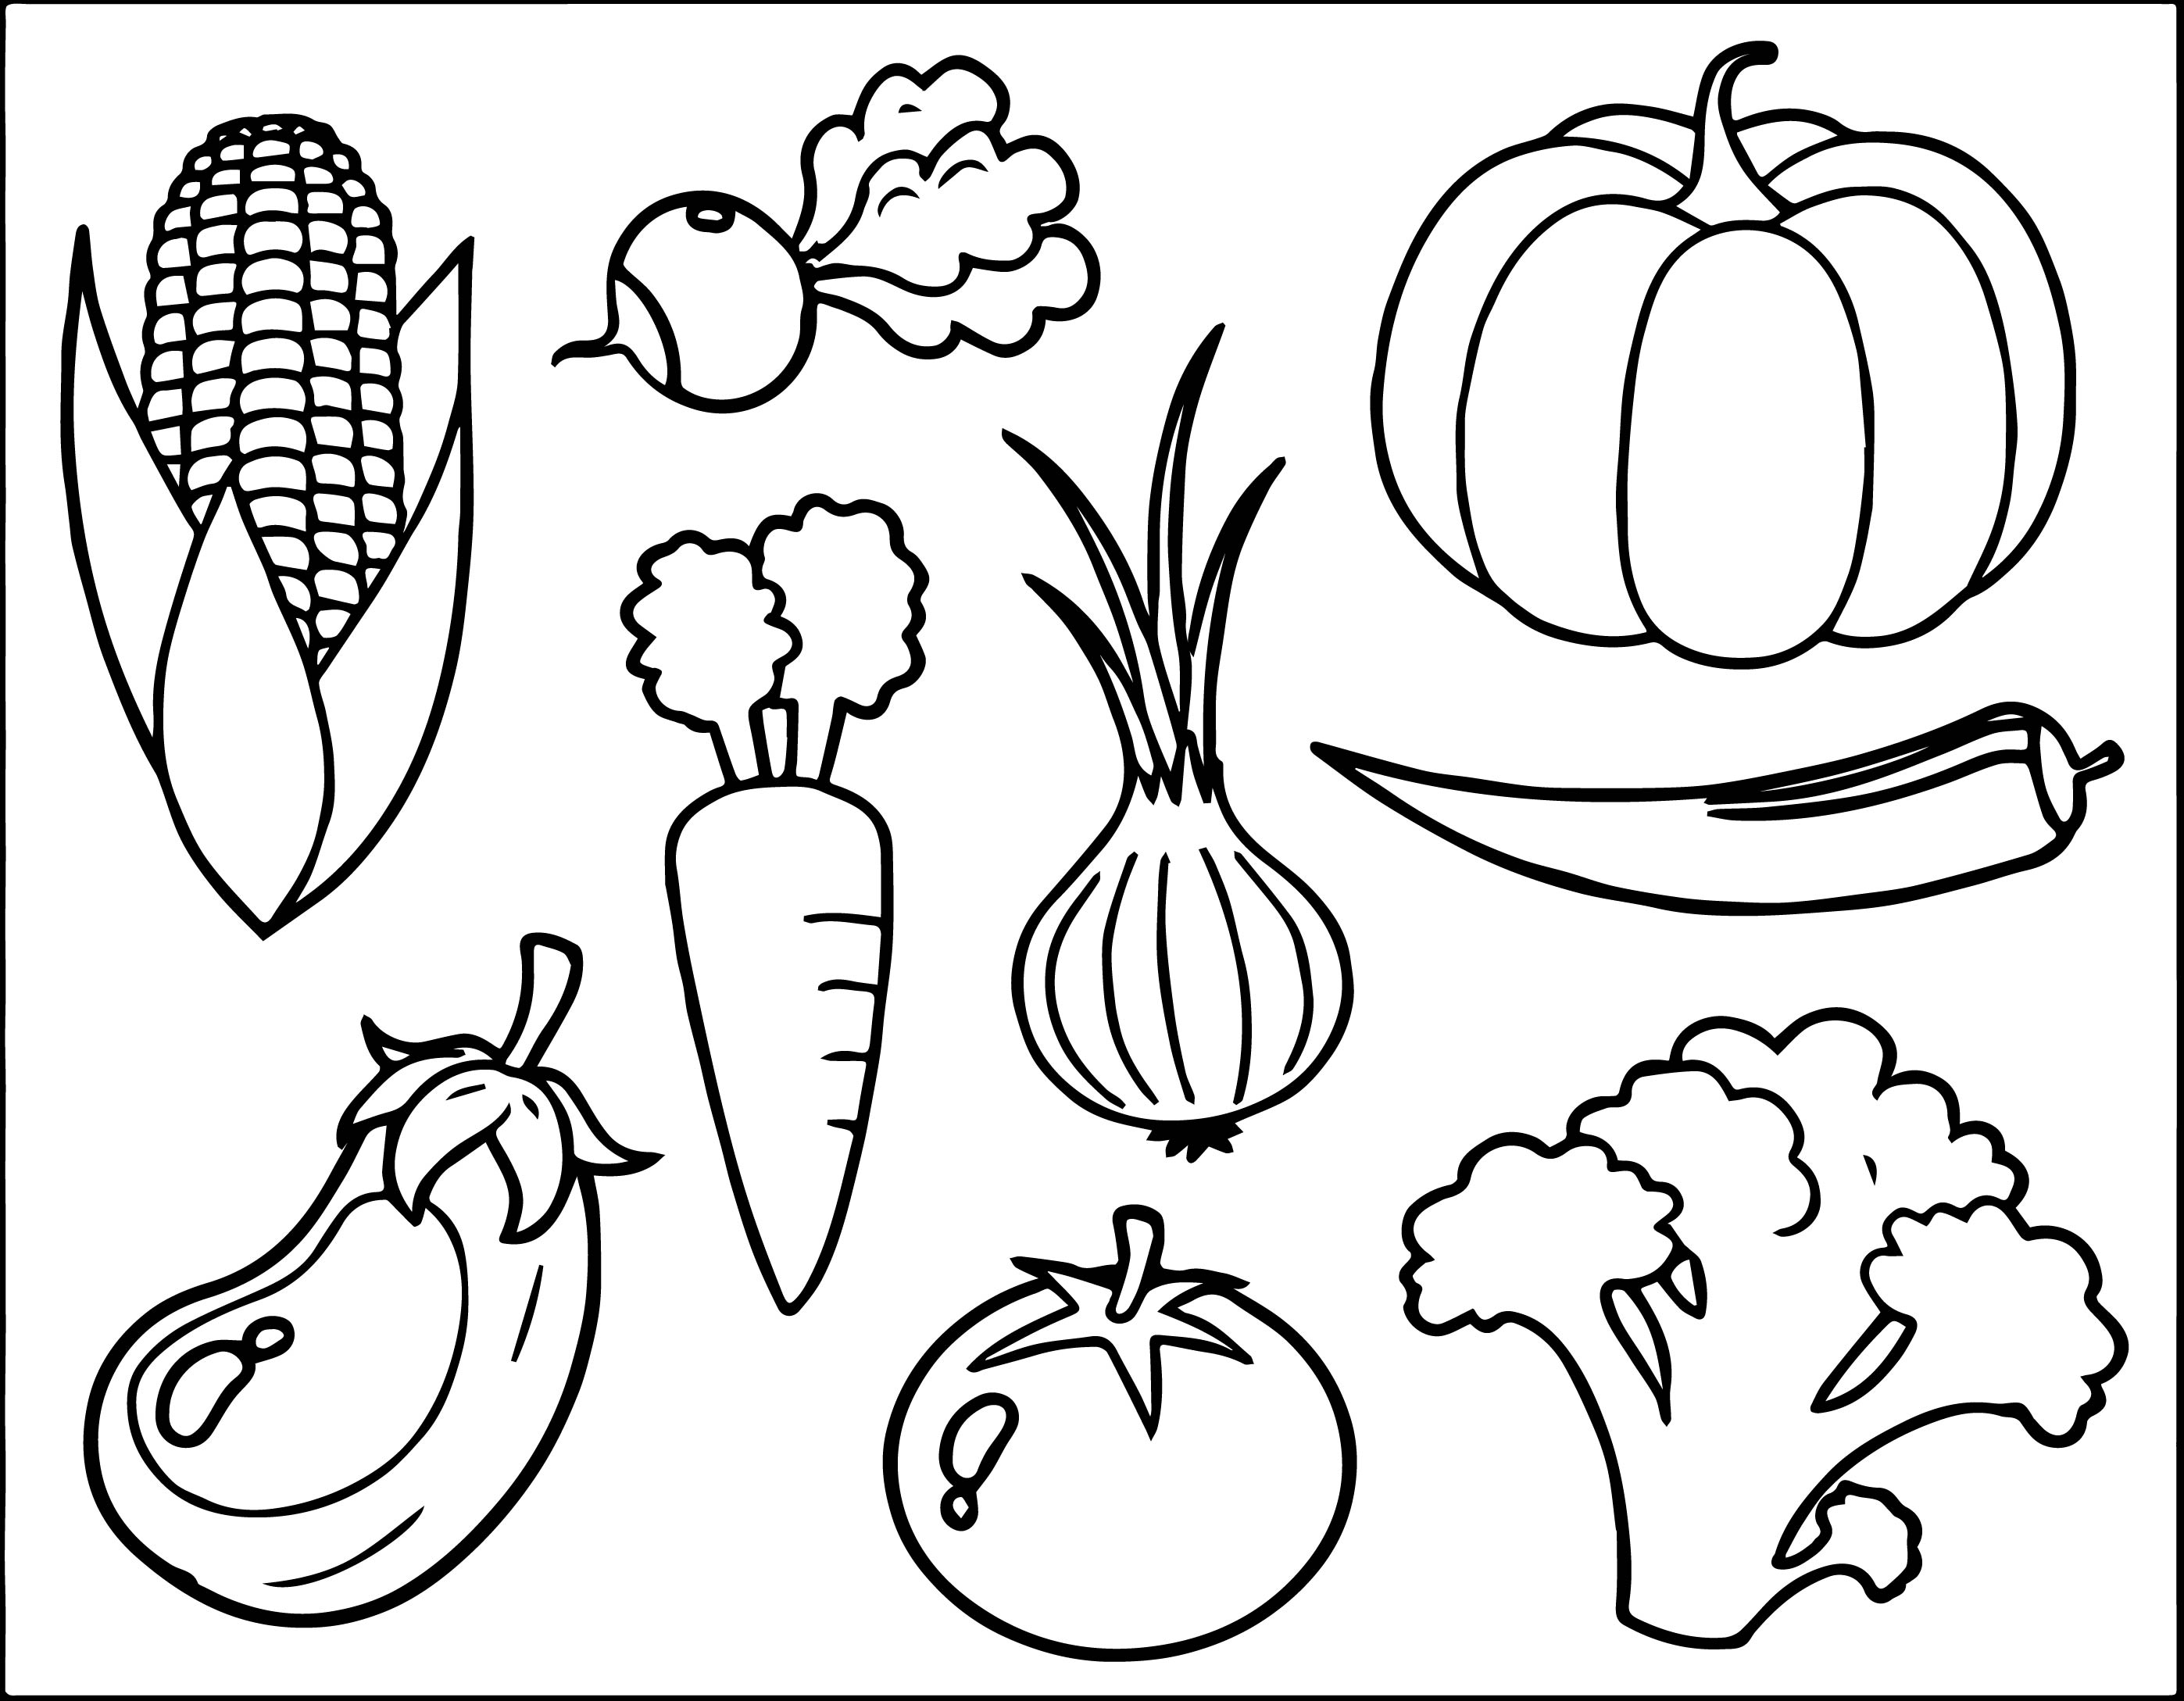 vegetable pictures to color vegetables coloring page wecoloringpagecom to pictures vegetable color